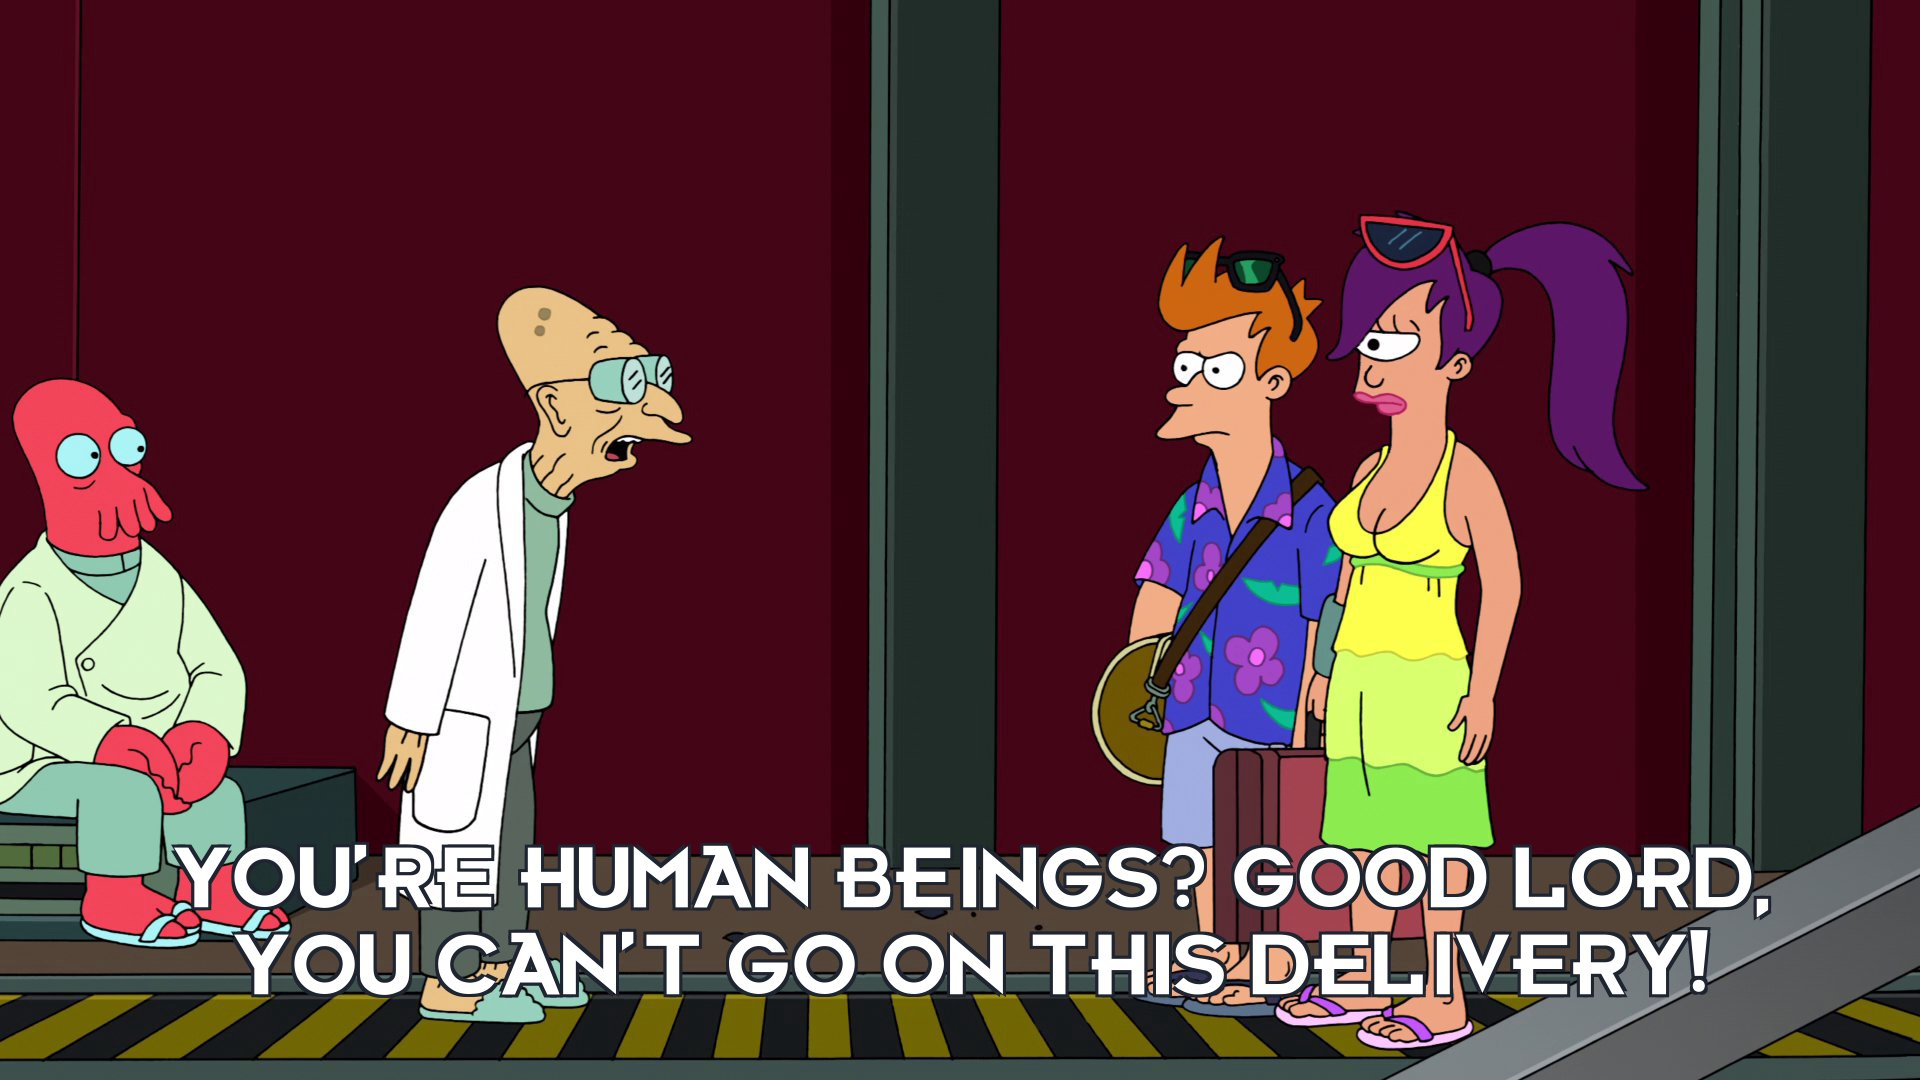 Prof Hubert J Farnsworth: You're human beings? Good lord, you can't go on this delivery!